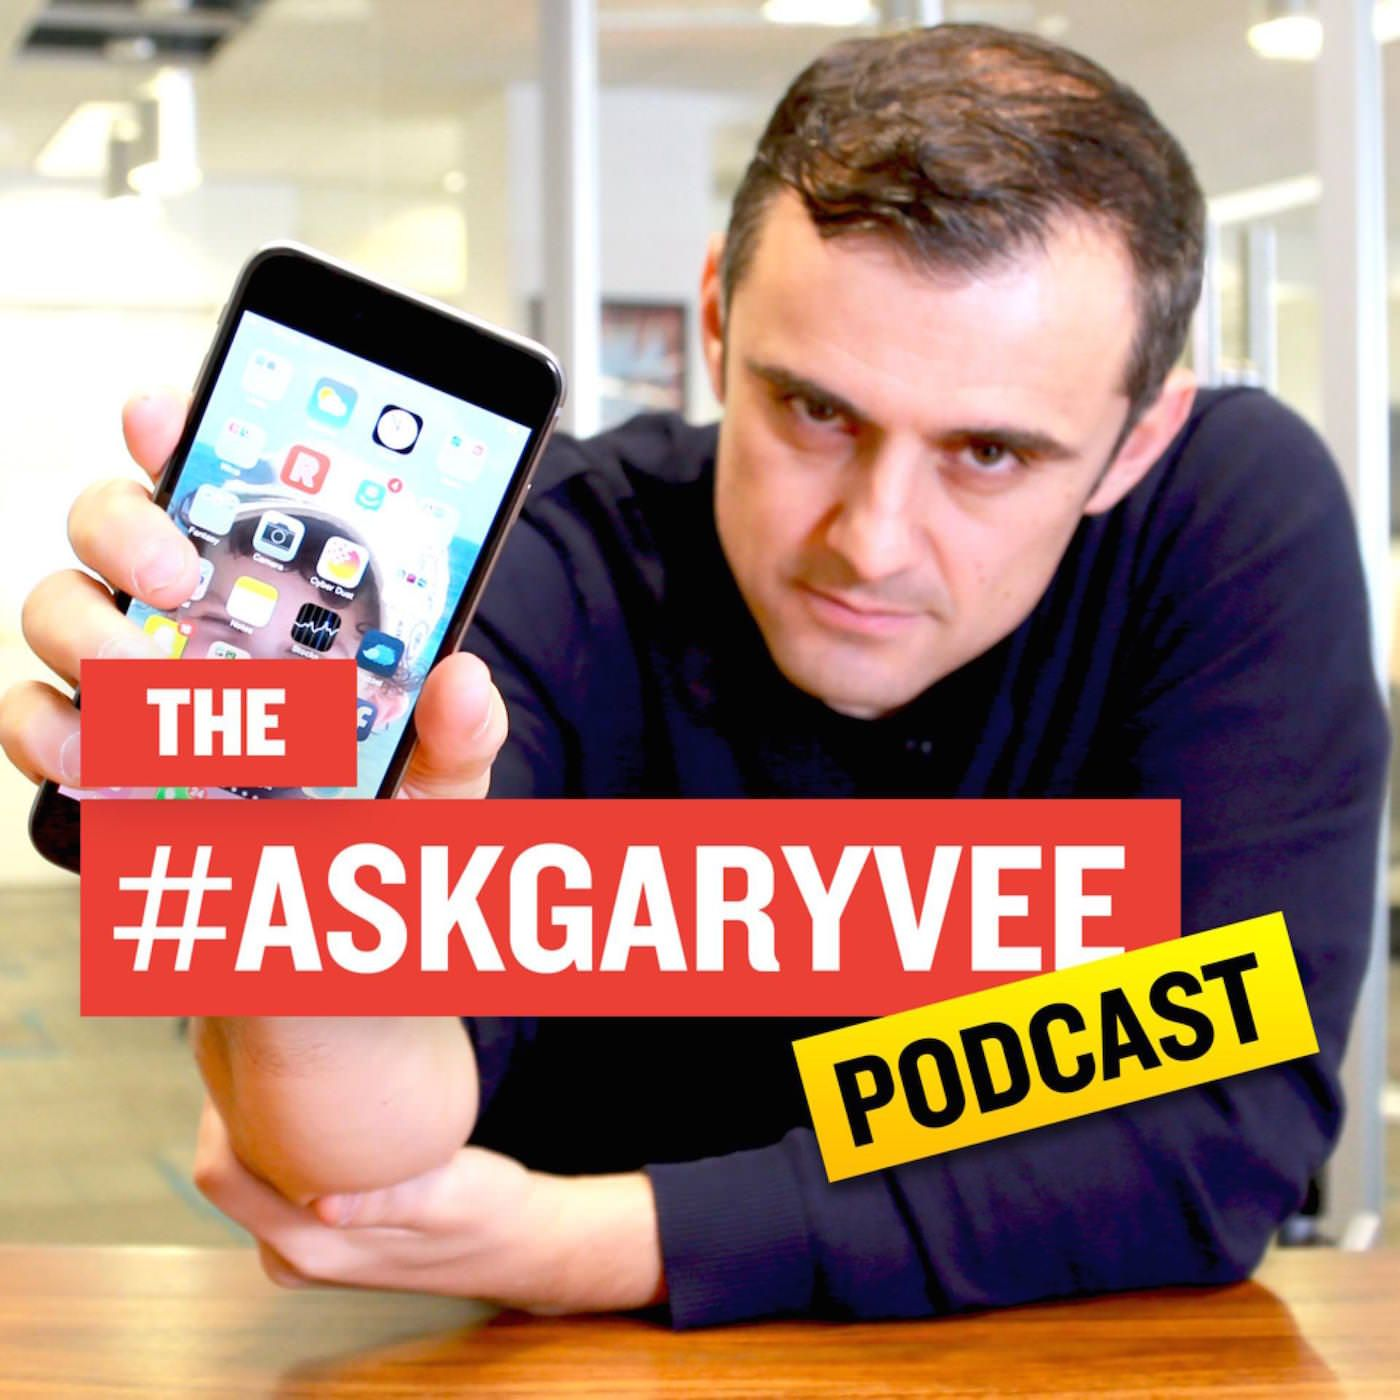 ask-garyvee-podcast